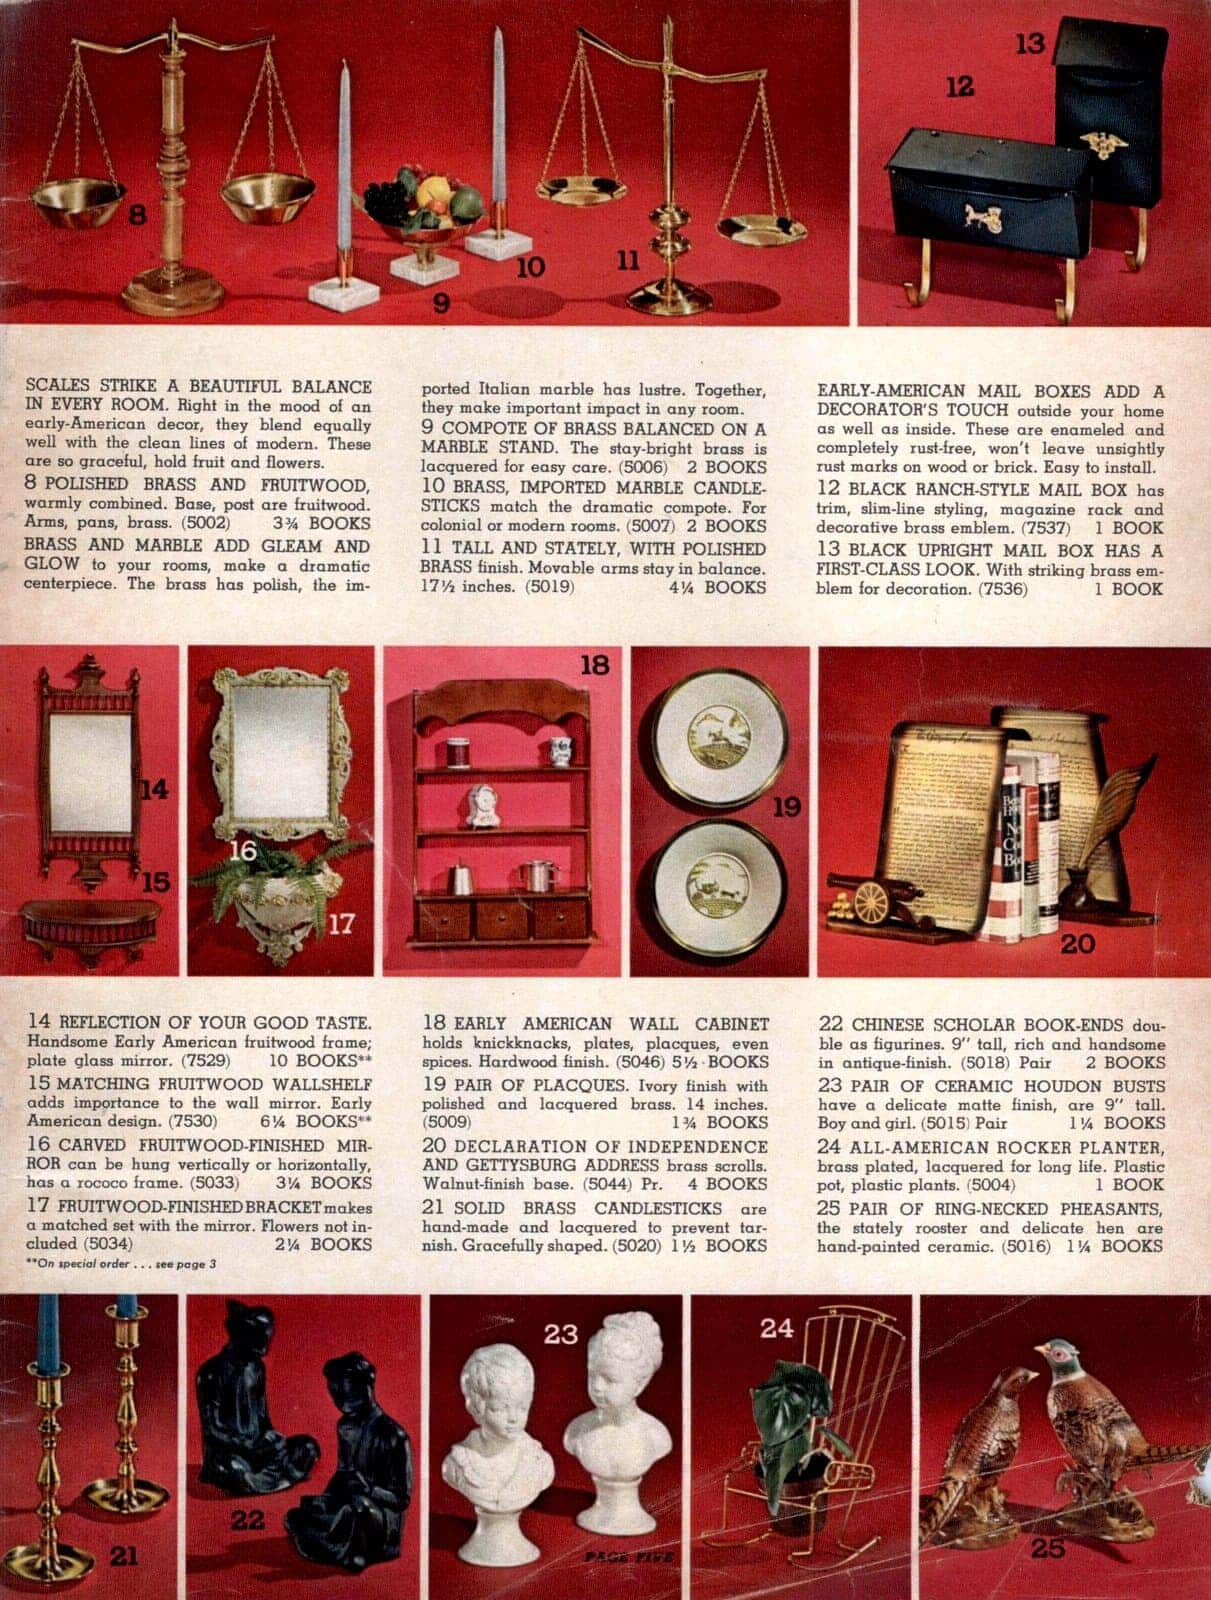 Vintage home decor - scales, mail boxes, mirrors, tables, statues, candle holders and bookends